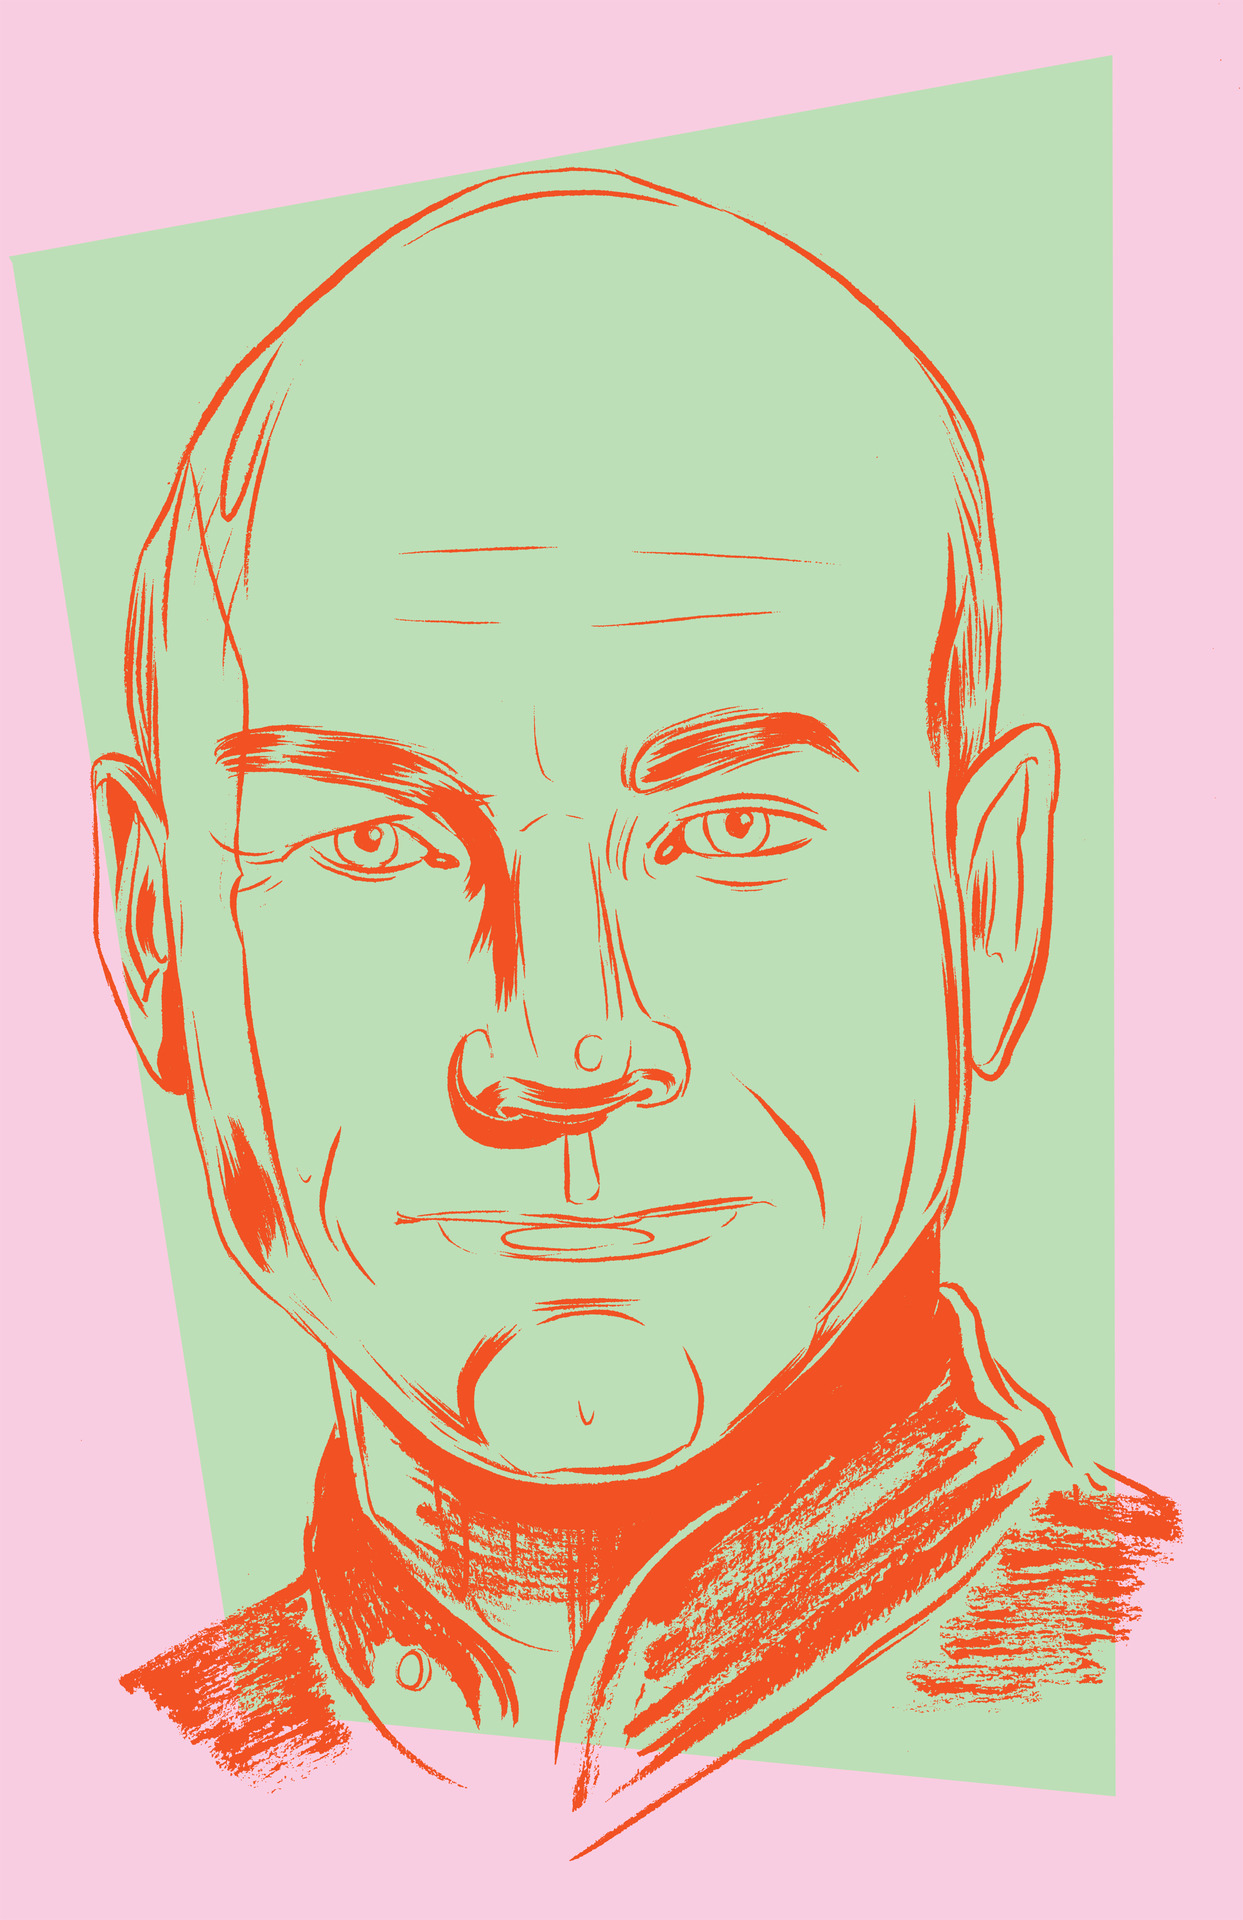 Captain Picard!  And now I sleep. More captains tomorrow…